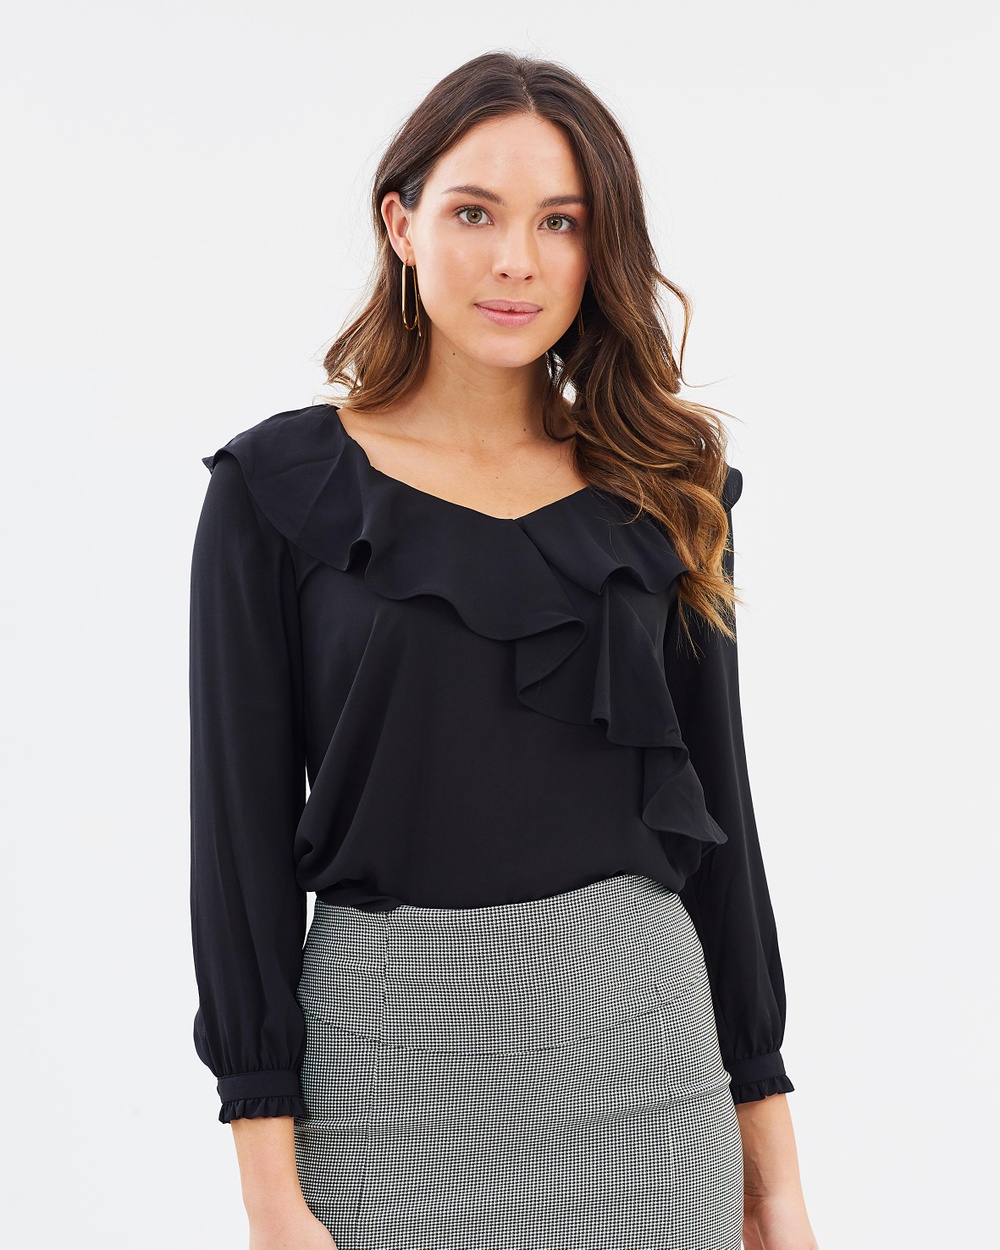 Forcast Kenia Frilled Blouse Tops Black Kenia Frilled Blouse